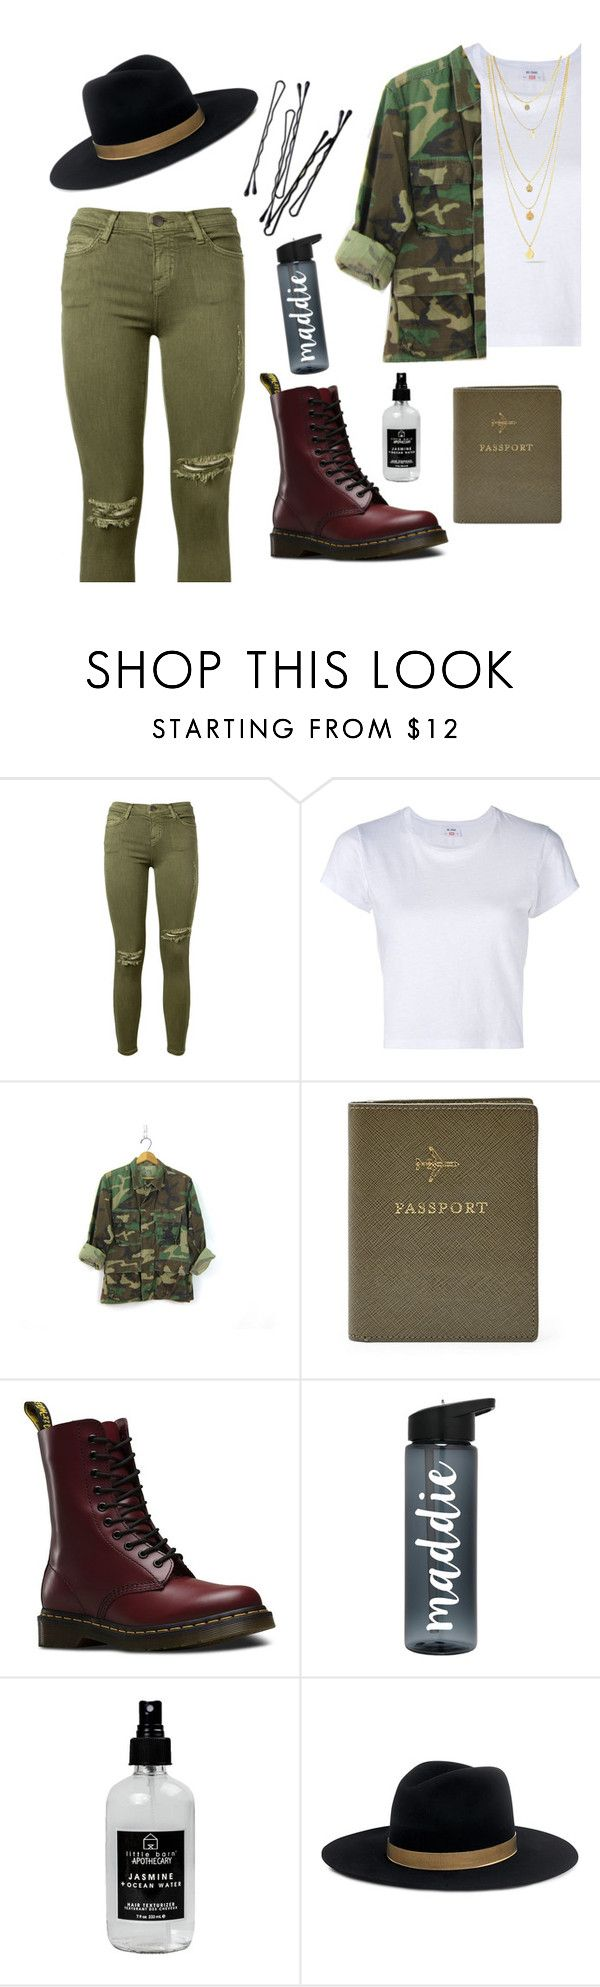 """Cargo"" by andra-andu ❤ liked on Polyvore featuring Current/Elliott, RE/DONE, BOBBY, FOSSIL, Dr. Martens, Little Barn Apothecary and Janessa Leone"